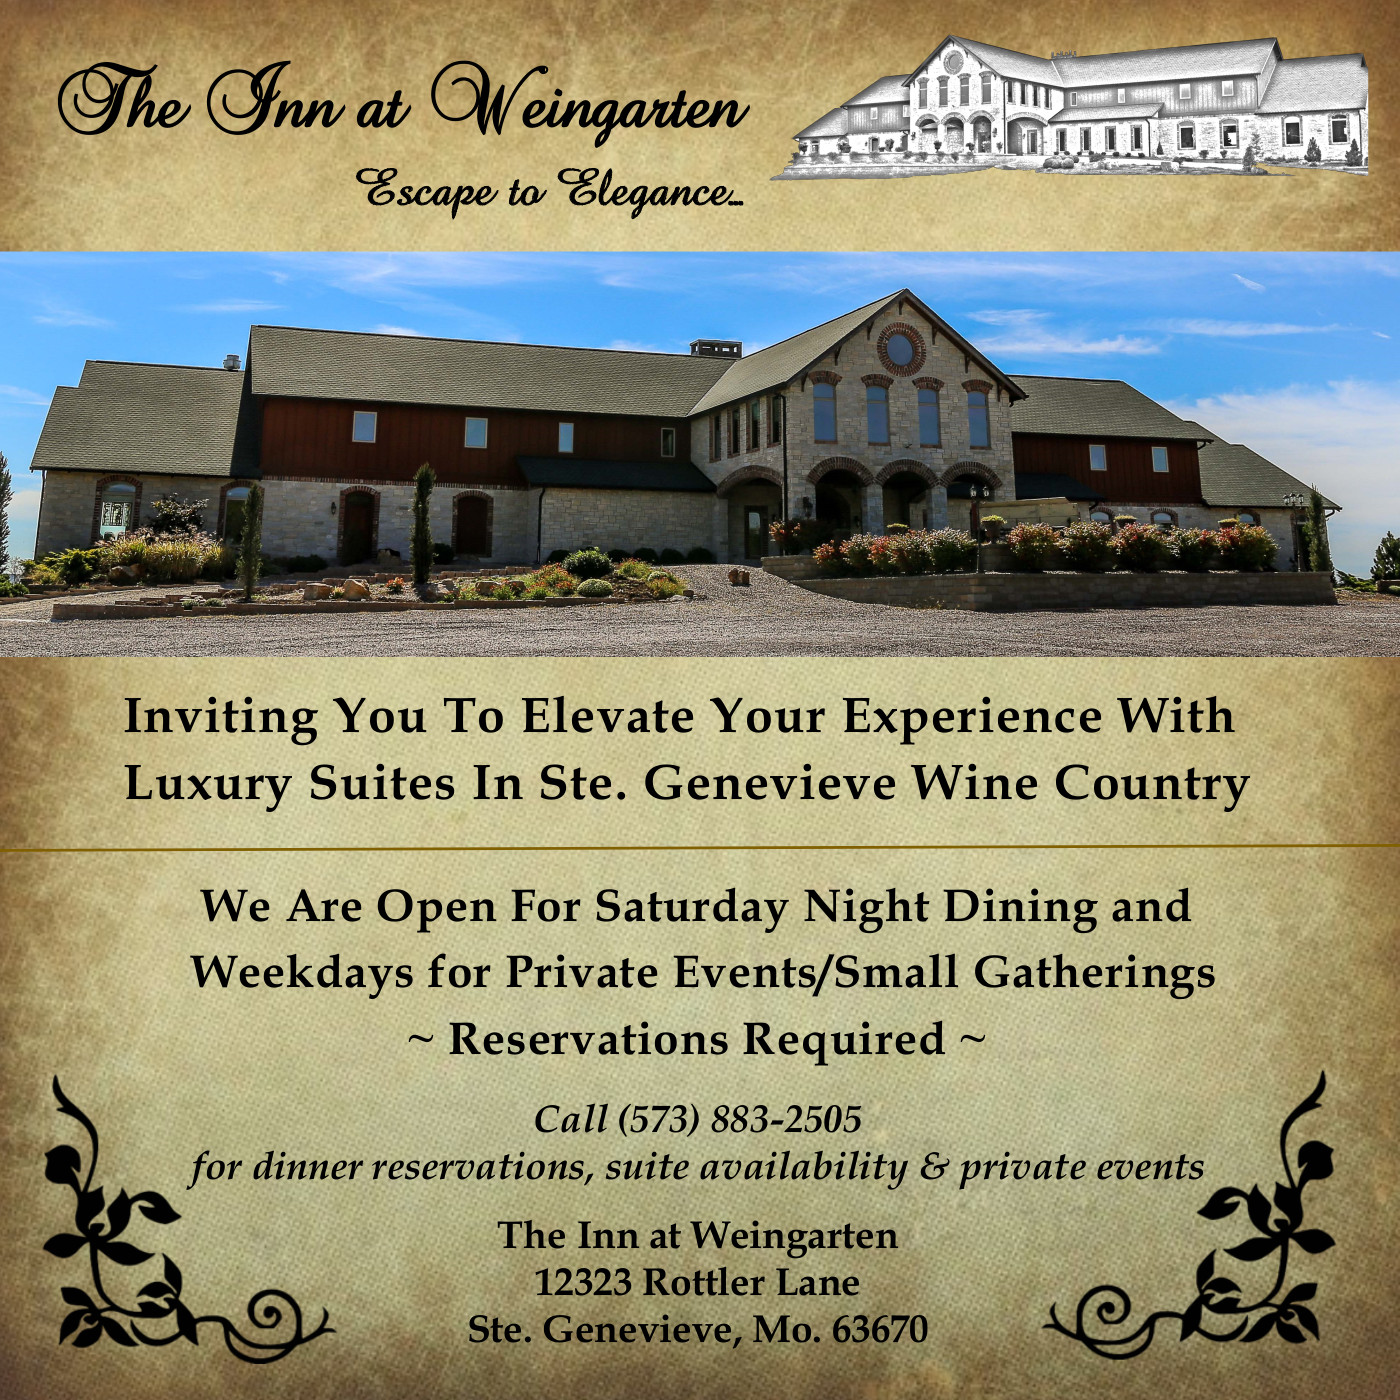 Coming soon, The Inn at Weingarten.  Call for details 573-883-2505. 12323 Rottler Lane, Ste. Genevieve, MO 63670